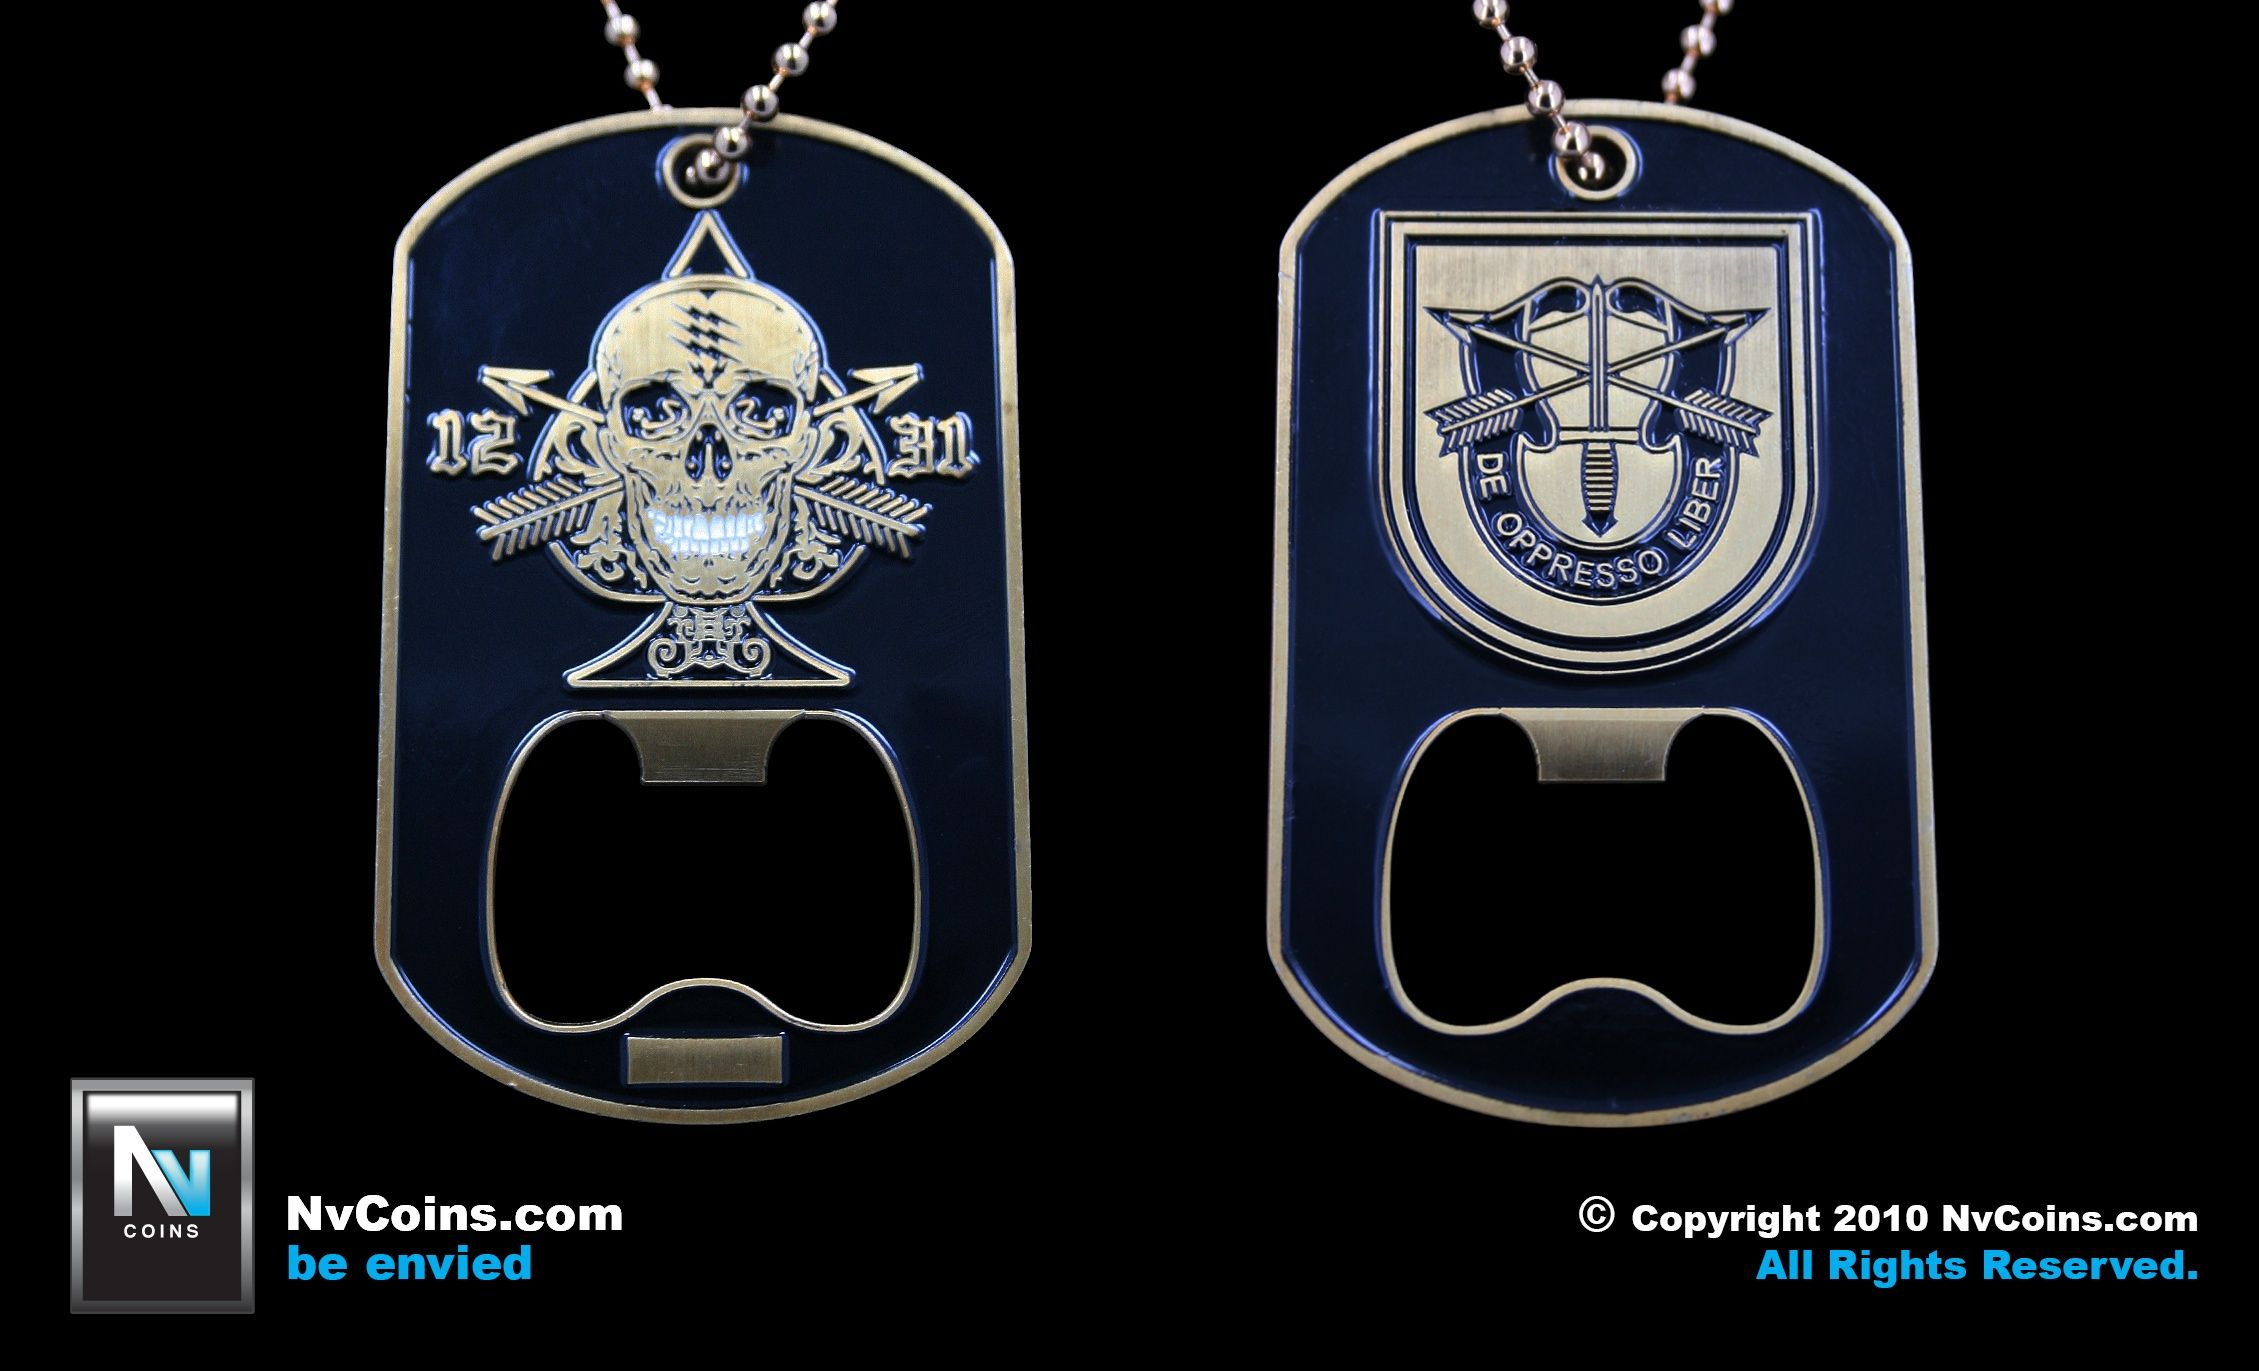 Bottle Opener Coin by NvCoins com   NvCoins com   Dog tags